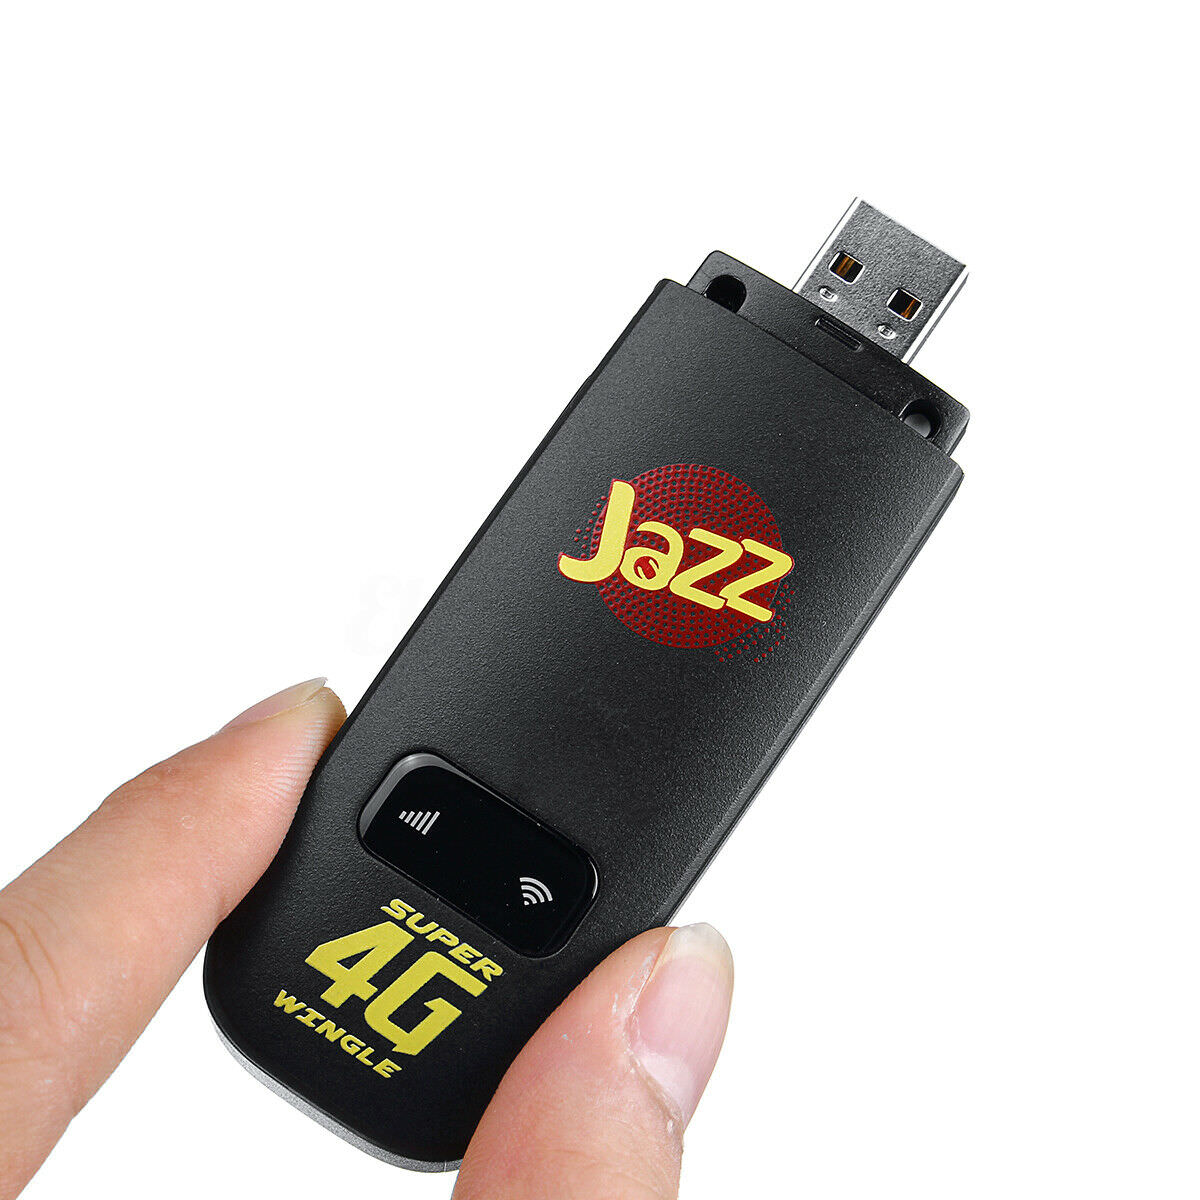 Unlocked Jazz WiFi Dongle / Hotspot / 4G 3G USB Modem Router